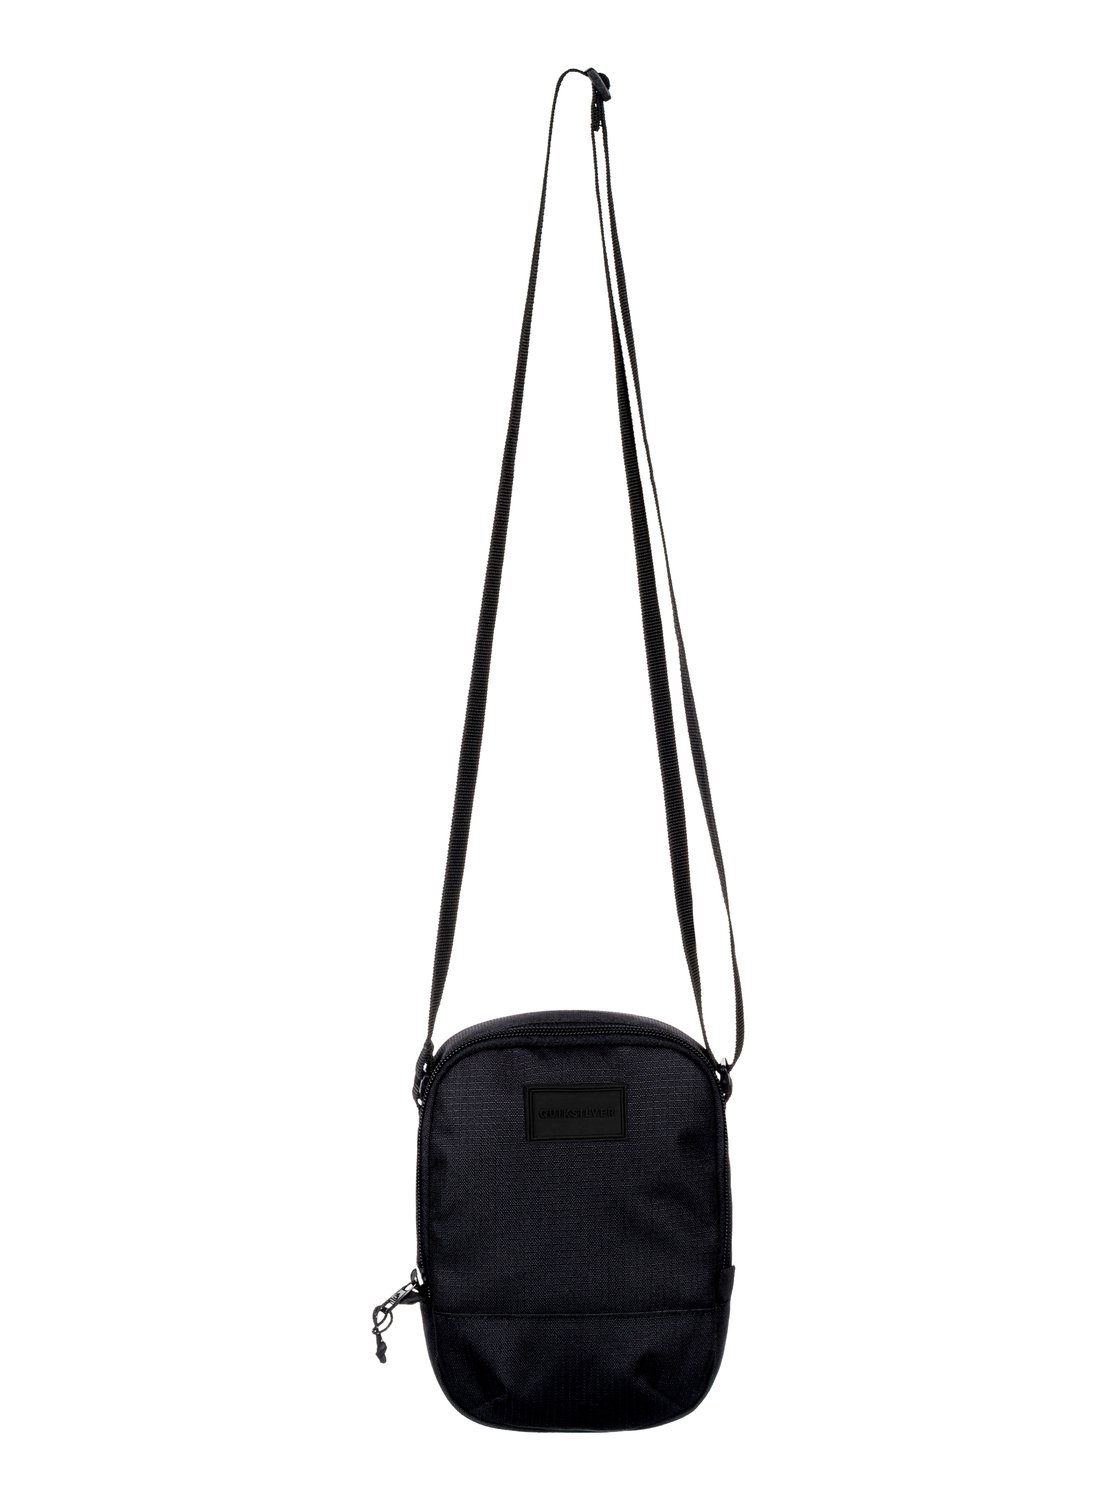 Quiksilver-Black-Dies-Small-Shoulder-Bag-Bolso-Pequeno-Hombre